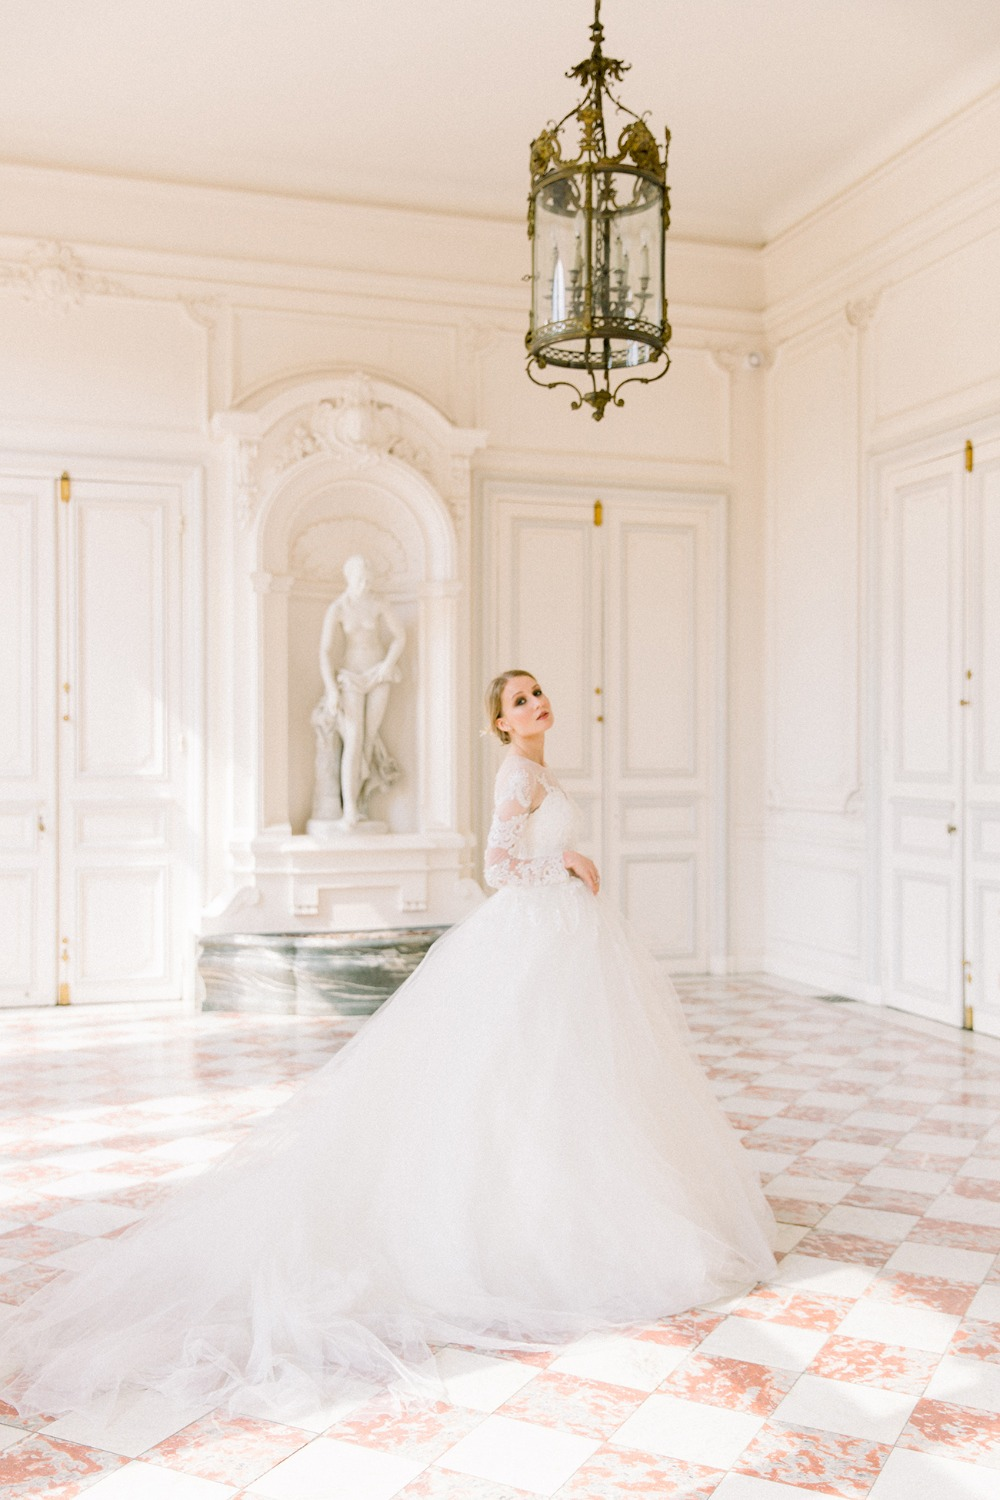 romantic wedding style for your french chateau wedding